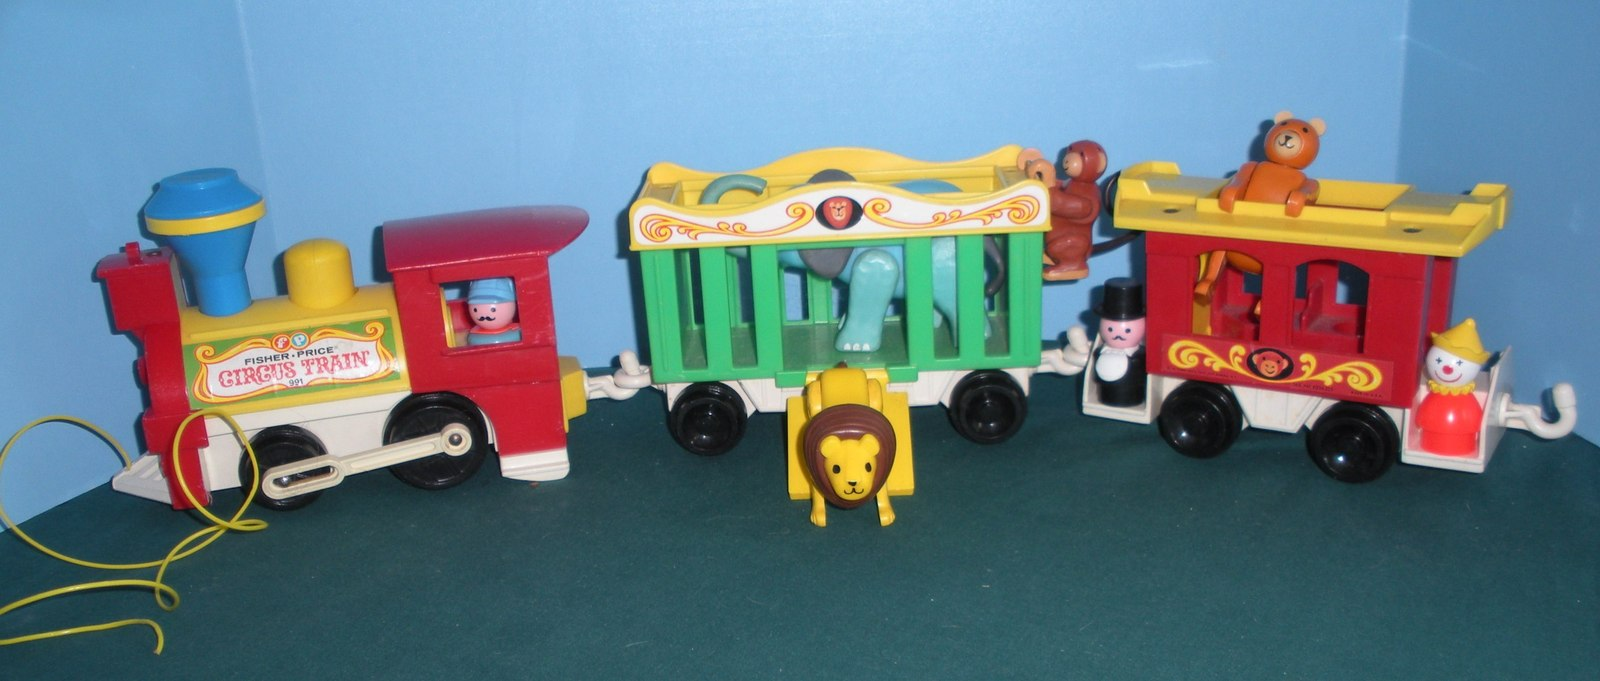 Vintage Fisher Price Play Family #991 3 Car Circus Train COMP/VG++--EXC! (P) image 6